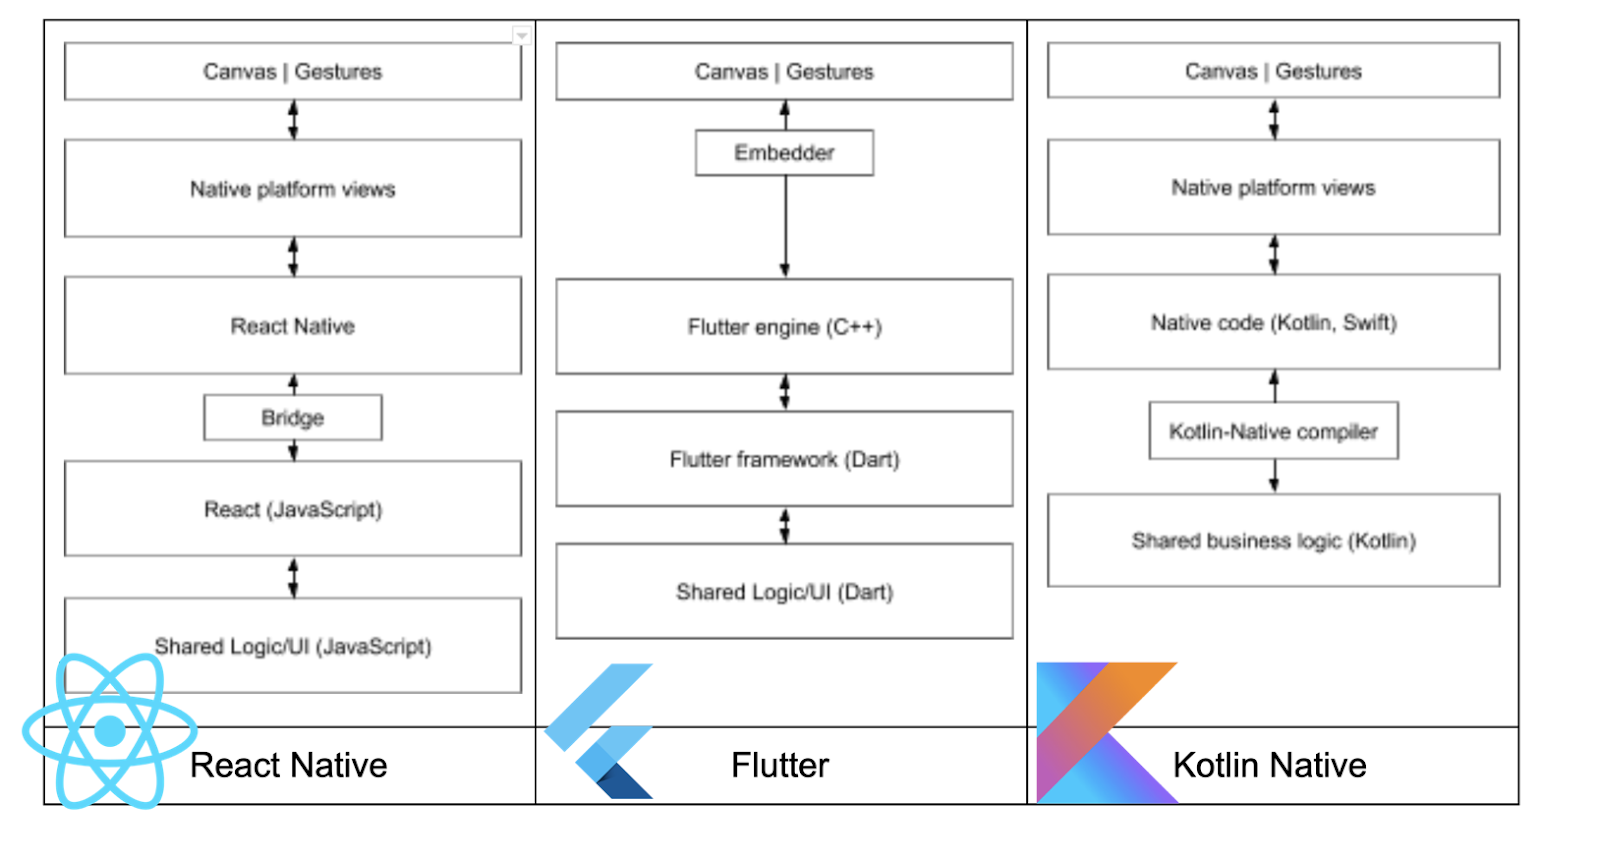 Diagrama comparando as arquiteturas do React Native, Flutter e Kotlin  mostra componentes do canvas à logica & UI